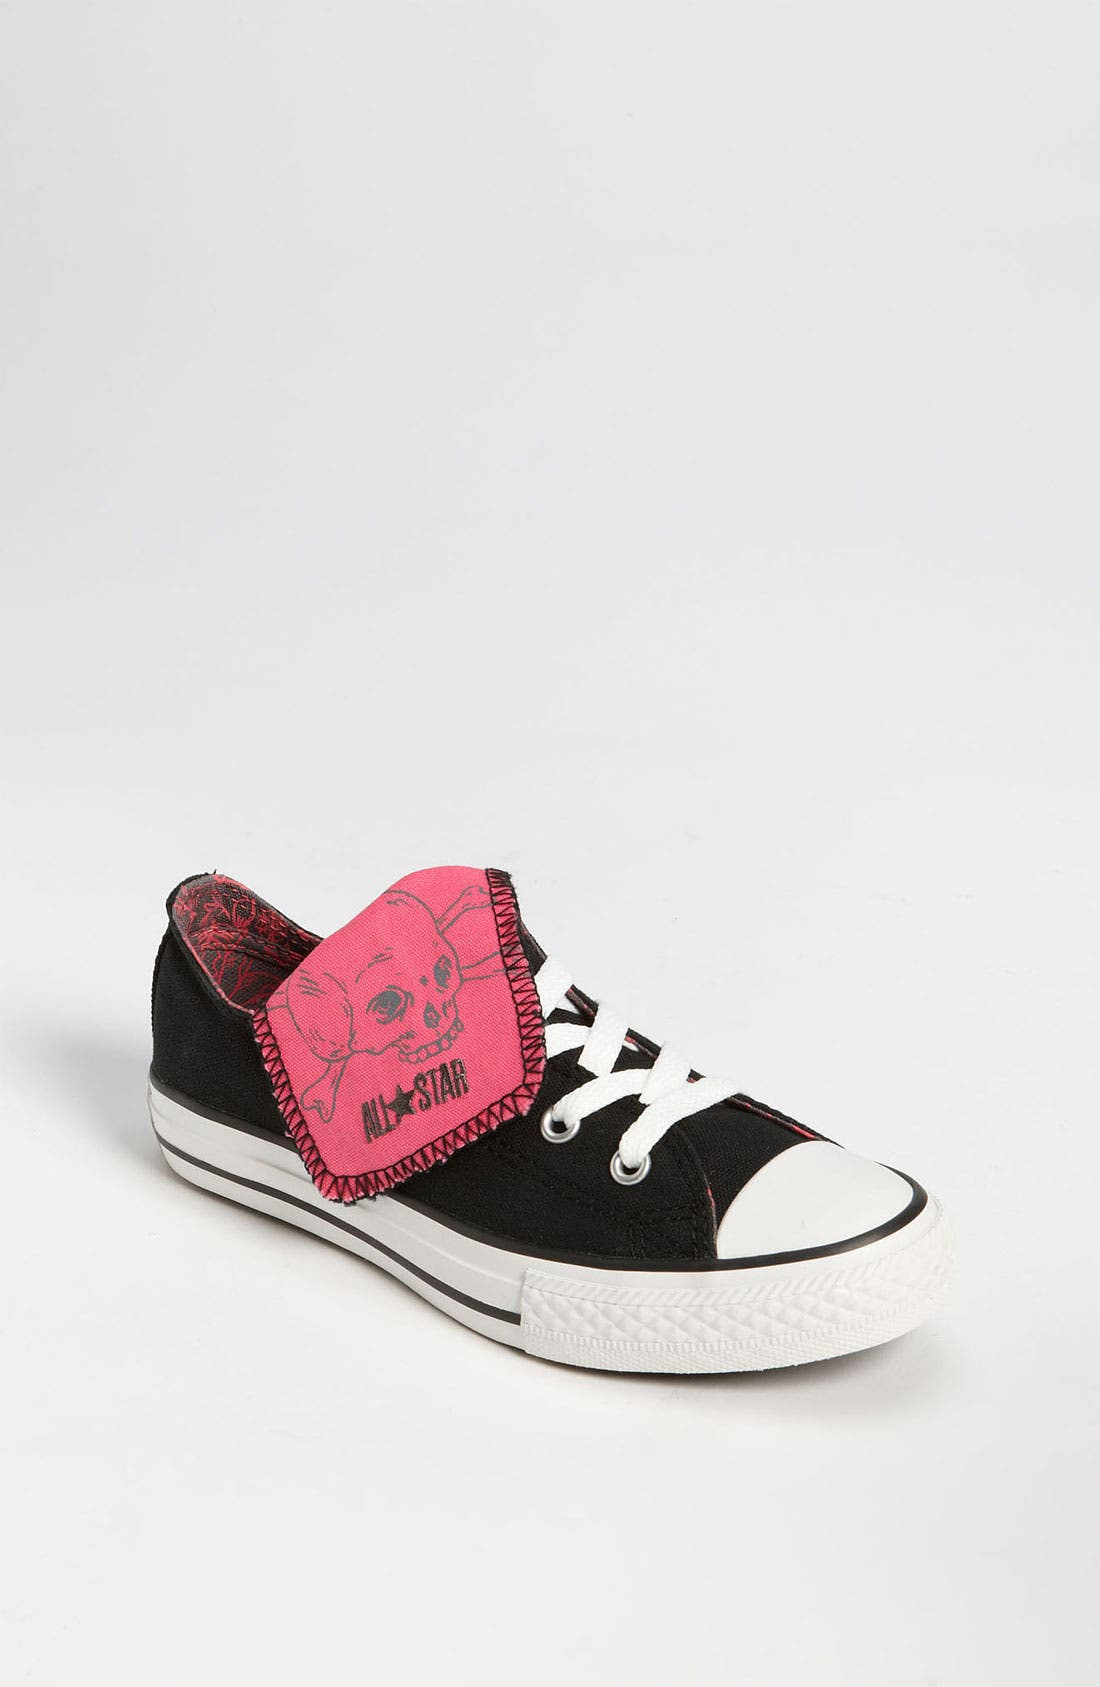 Alternate Image 1 Selected - Converse Chuck Taylor® All Star® 'Mega Tongue' Sneaker (Toddler, Little Kid & Big Kid)